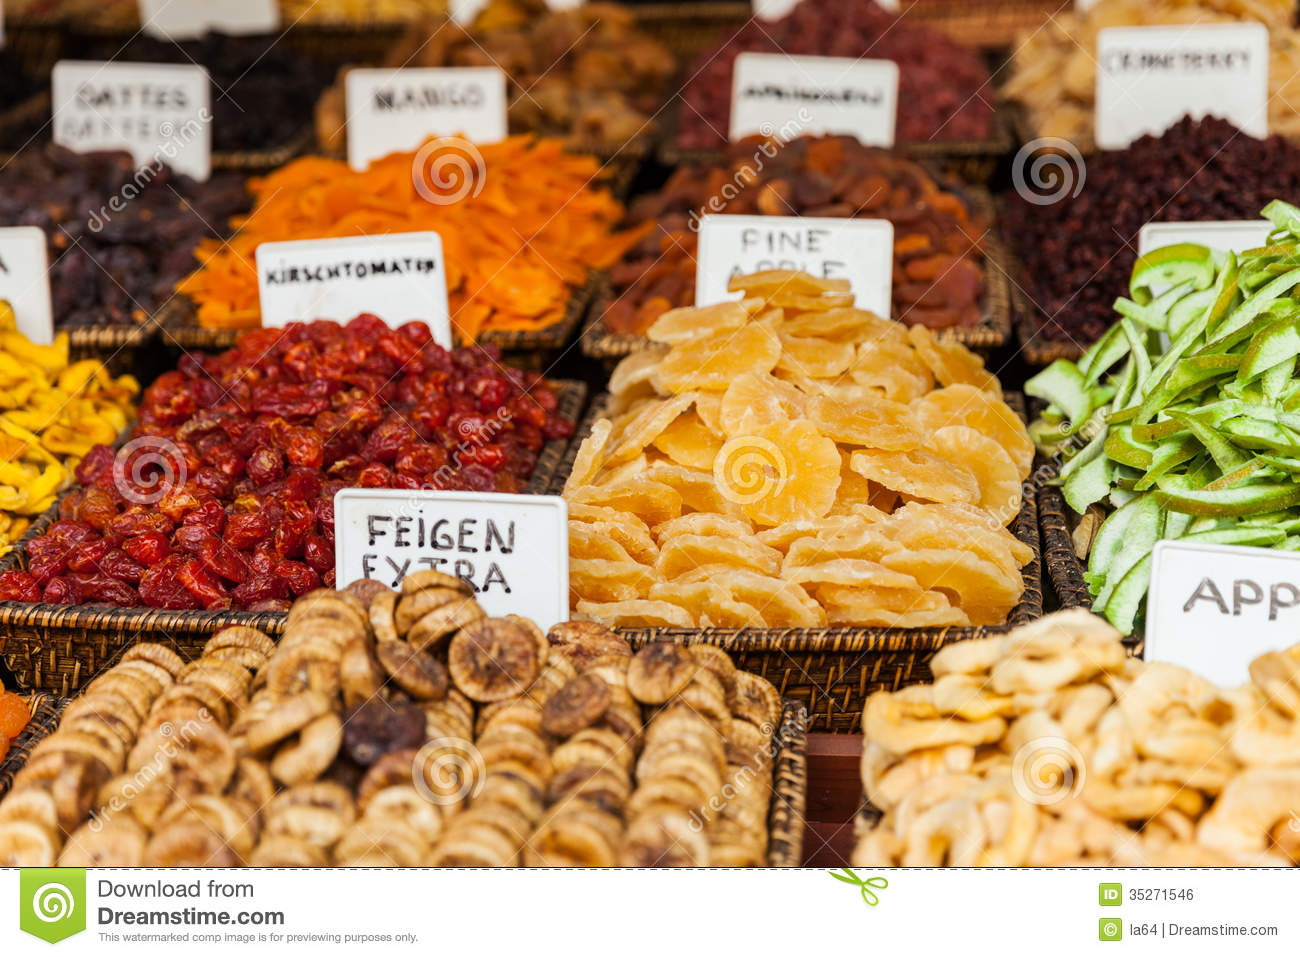 eating healthy fruits dried fruit healthy snack